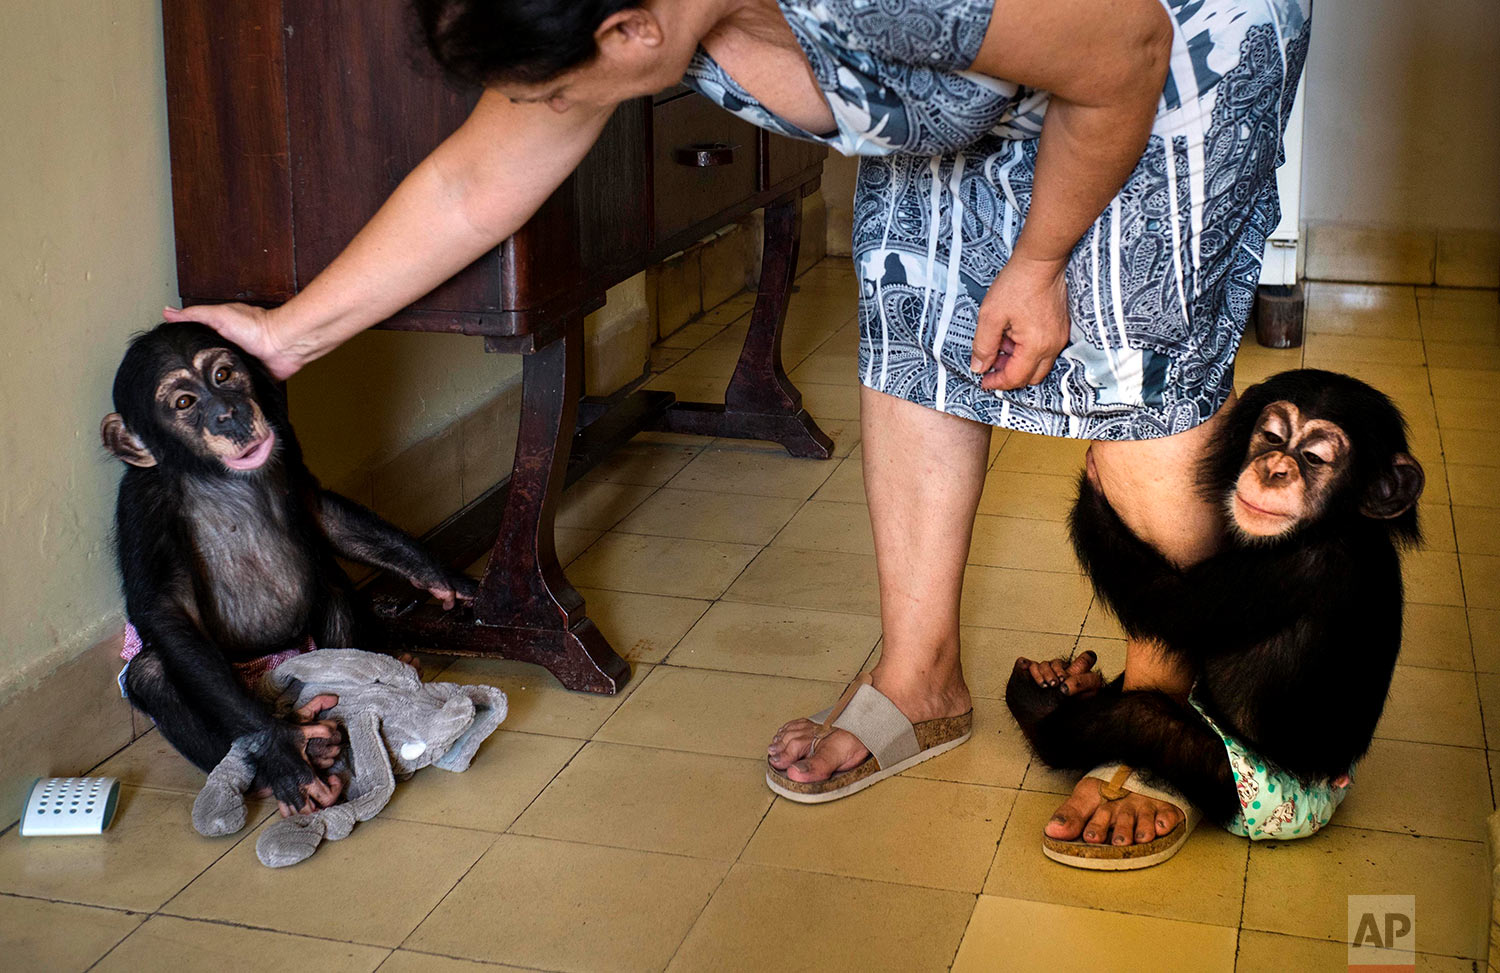 Zoologist Marta Llanes caresses baby chimpanzee Anuma II, left, while Ada hangs on to her leg, at Llanes' apartment in Havana, Cuba, Tuesday, April 4, 2017. Llanes has forgiven them every transgression. It's hard to stay angry at a baby chimpanzee when it clambers up your leg and into your arms and plants a kiss on your cheek in a plea for forgiveness. (AP Photo/Ramon Espinosa)